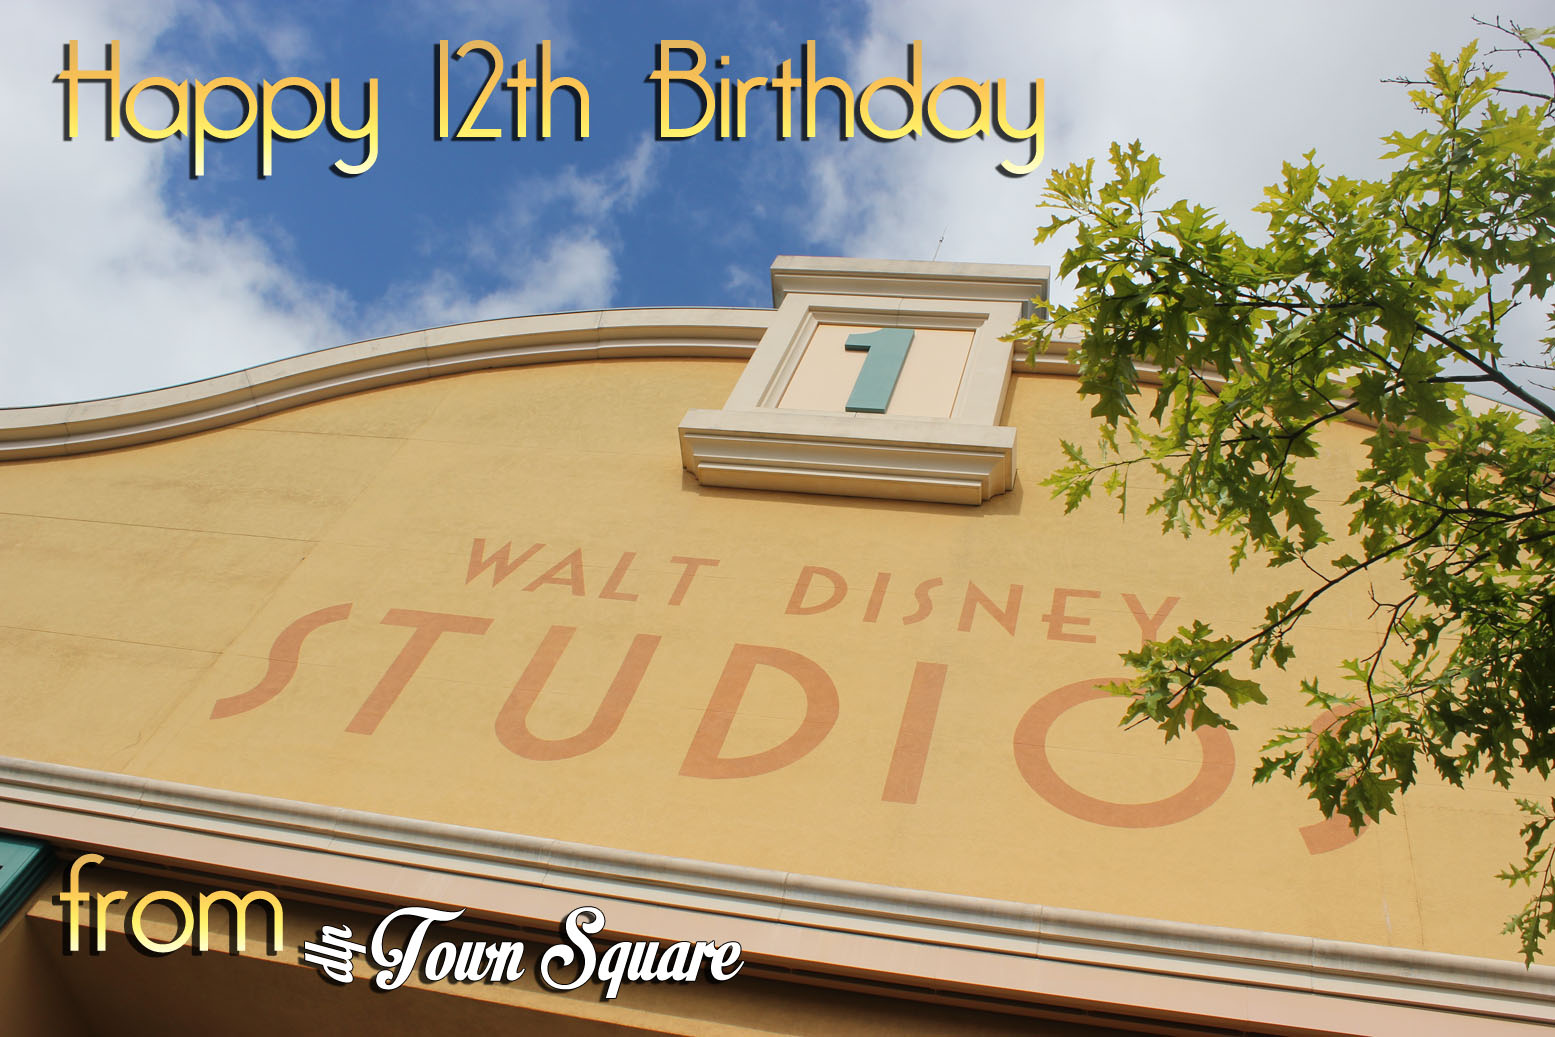 Happy 12th Birthday Walt Disney Studios Park, Paris